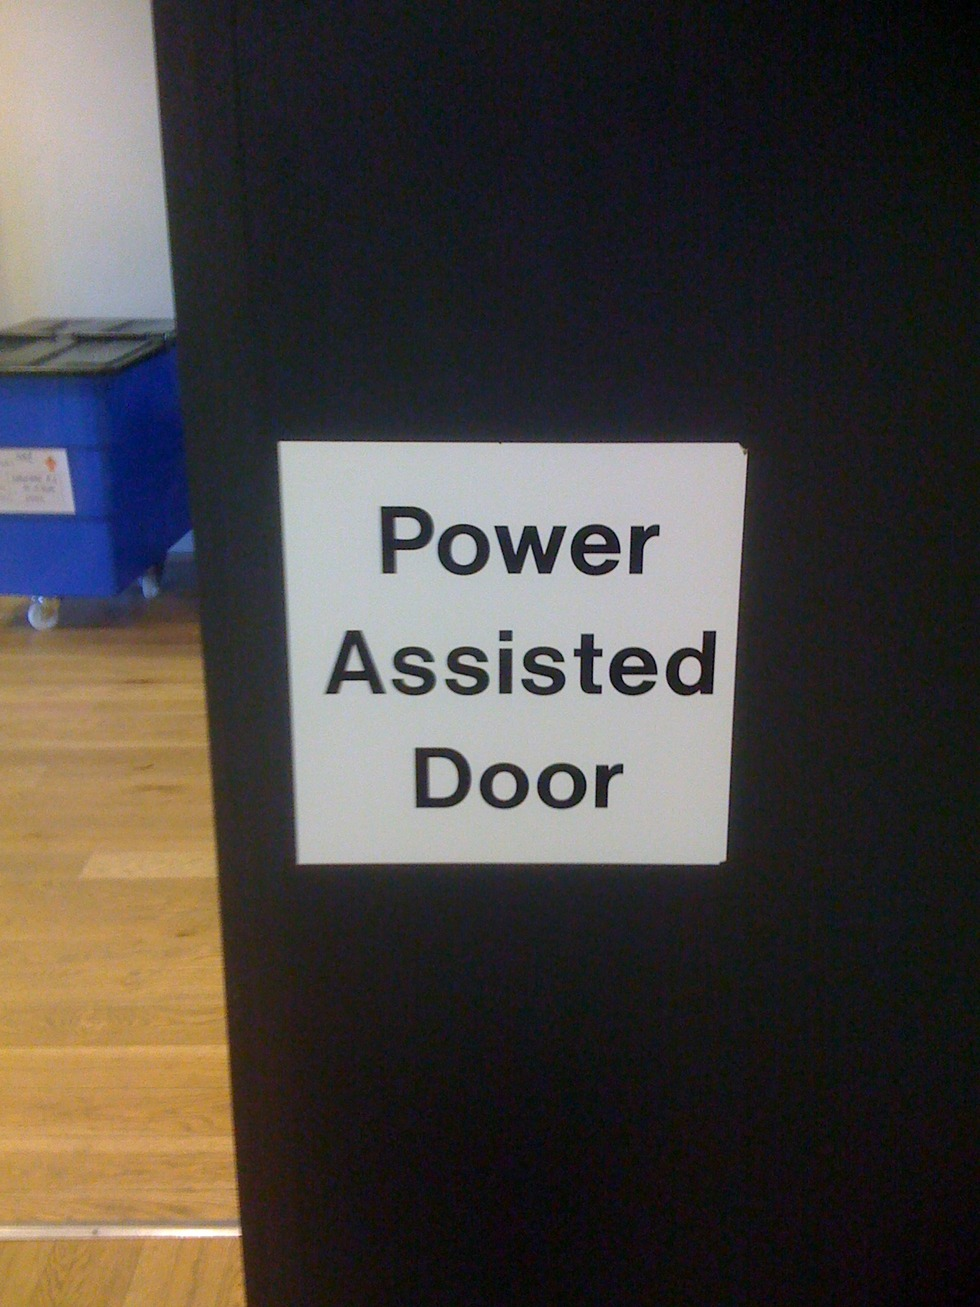 Powerassisted